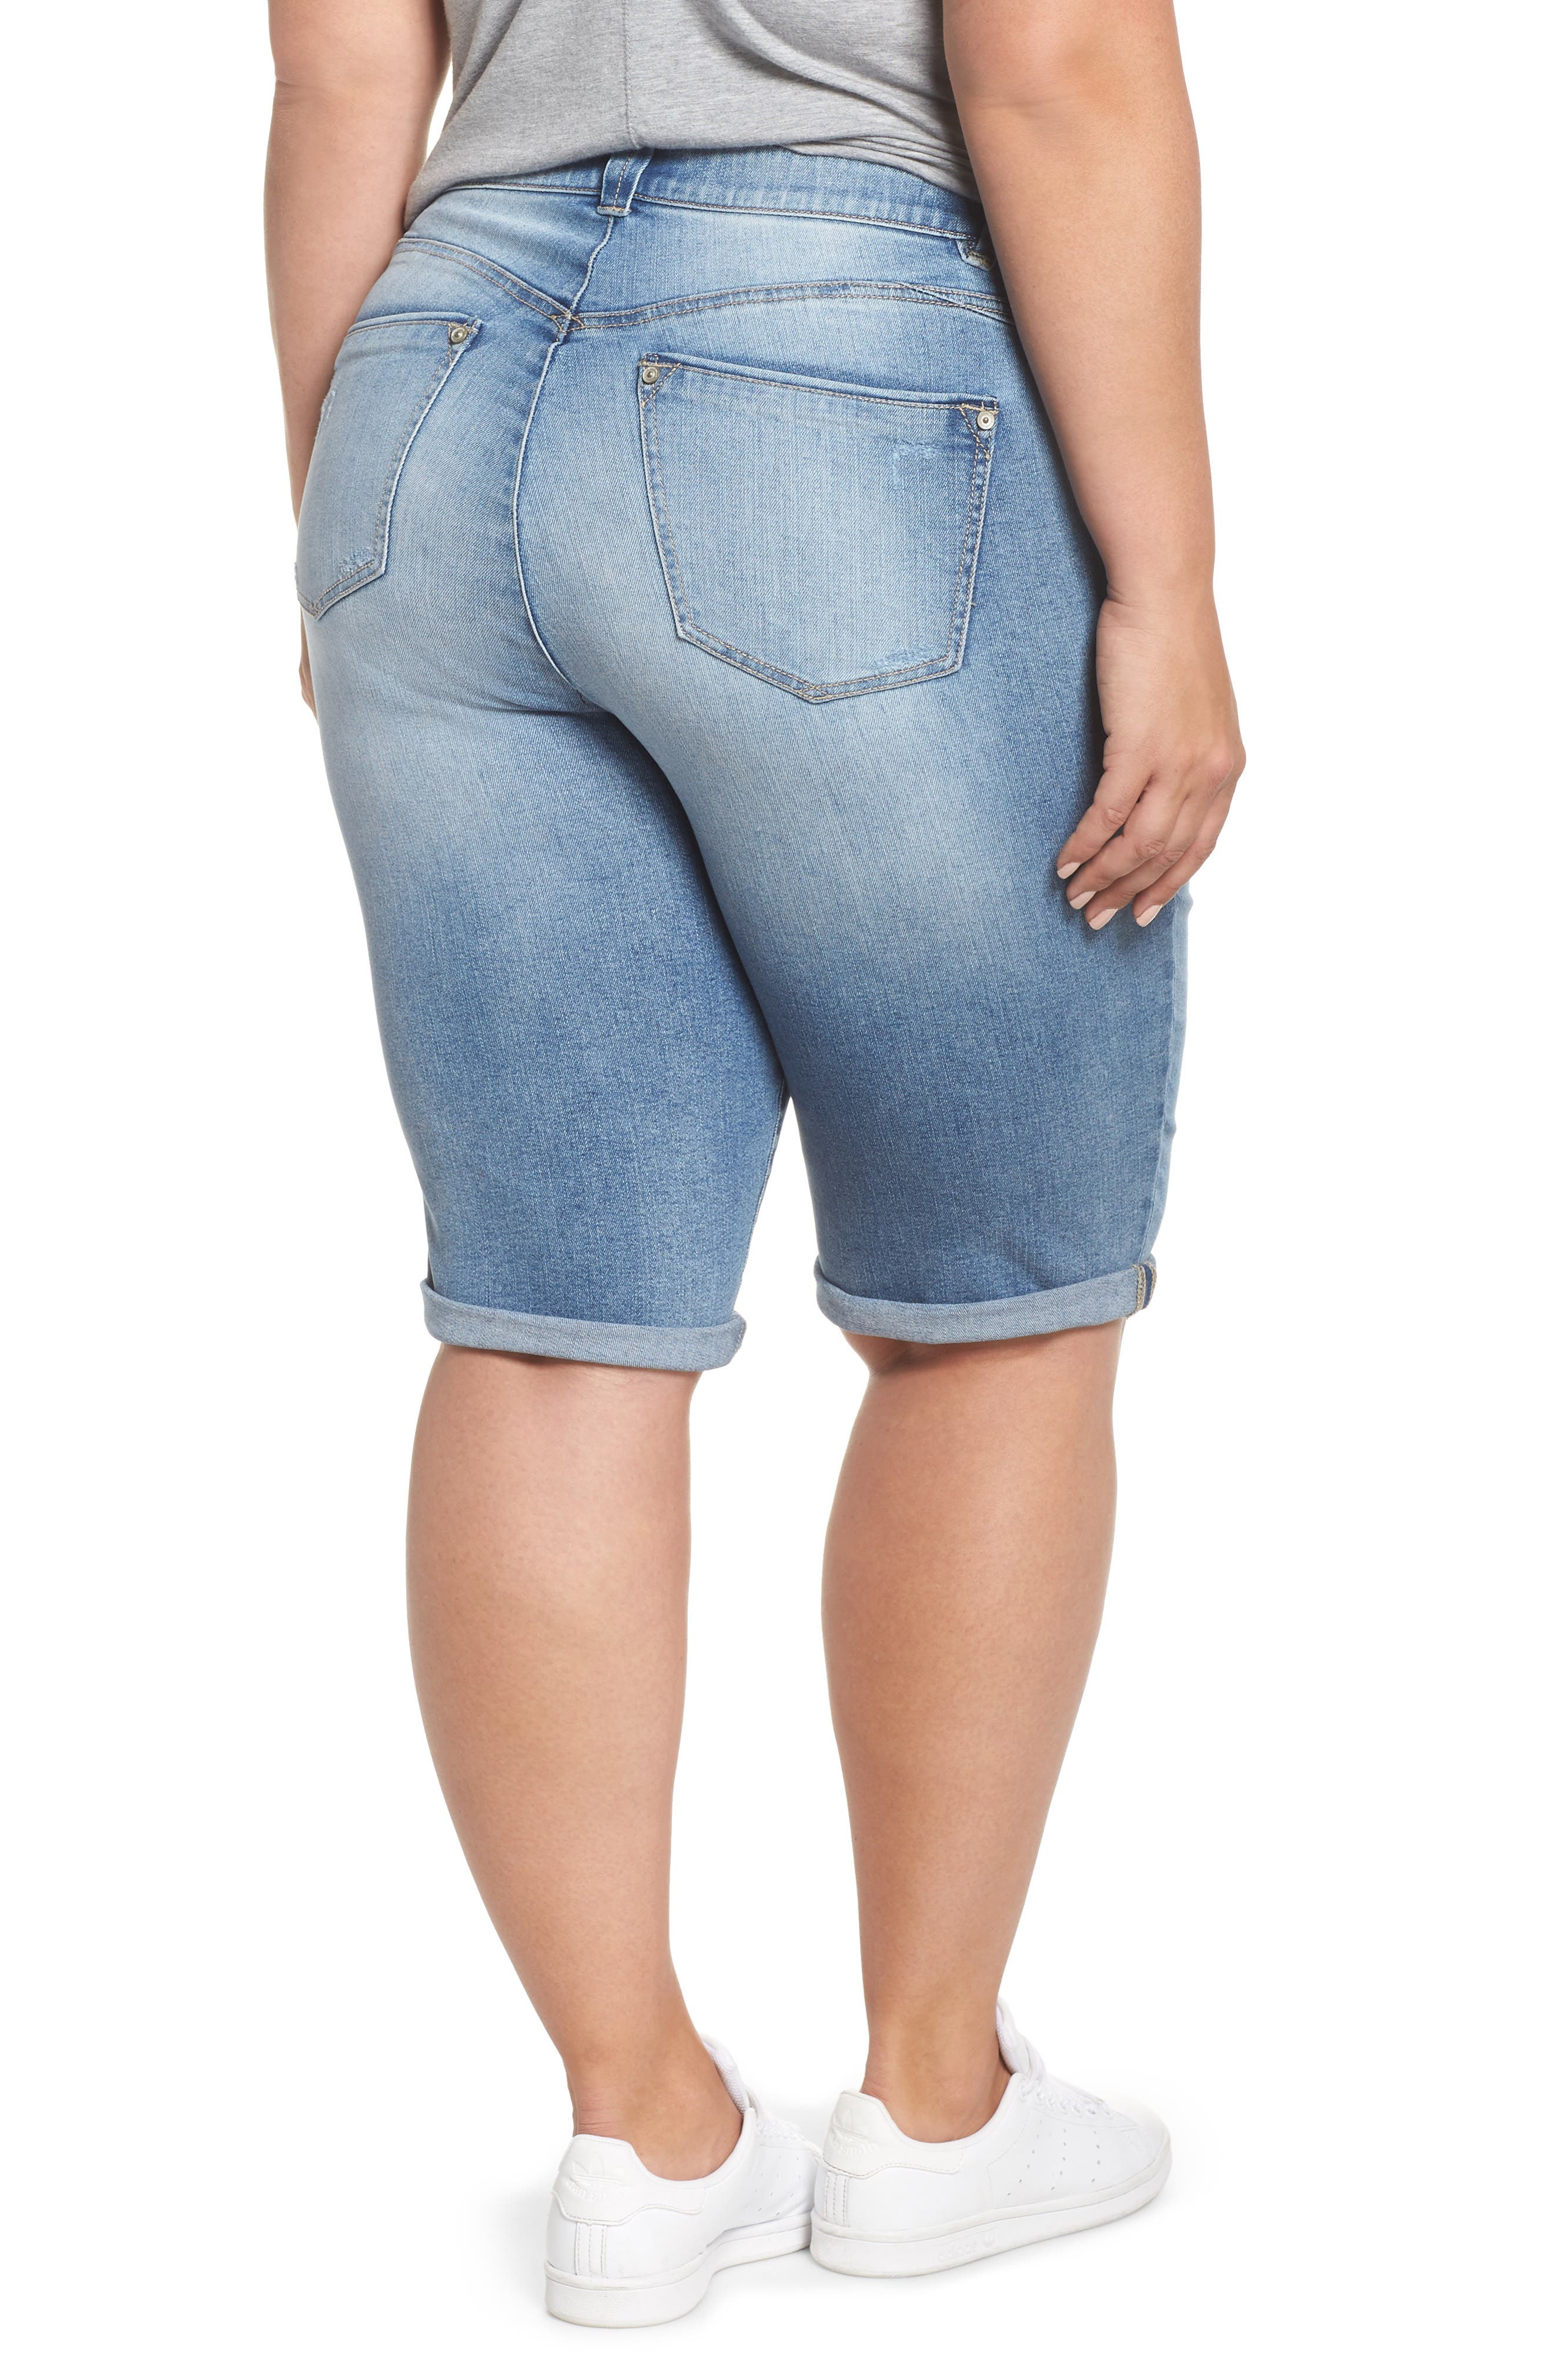 Ab-solution Cuffed Denim Shorts,                             Alternate thumbnail 2, color,                             458